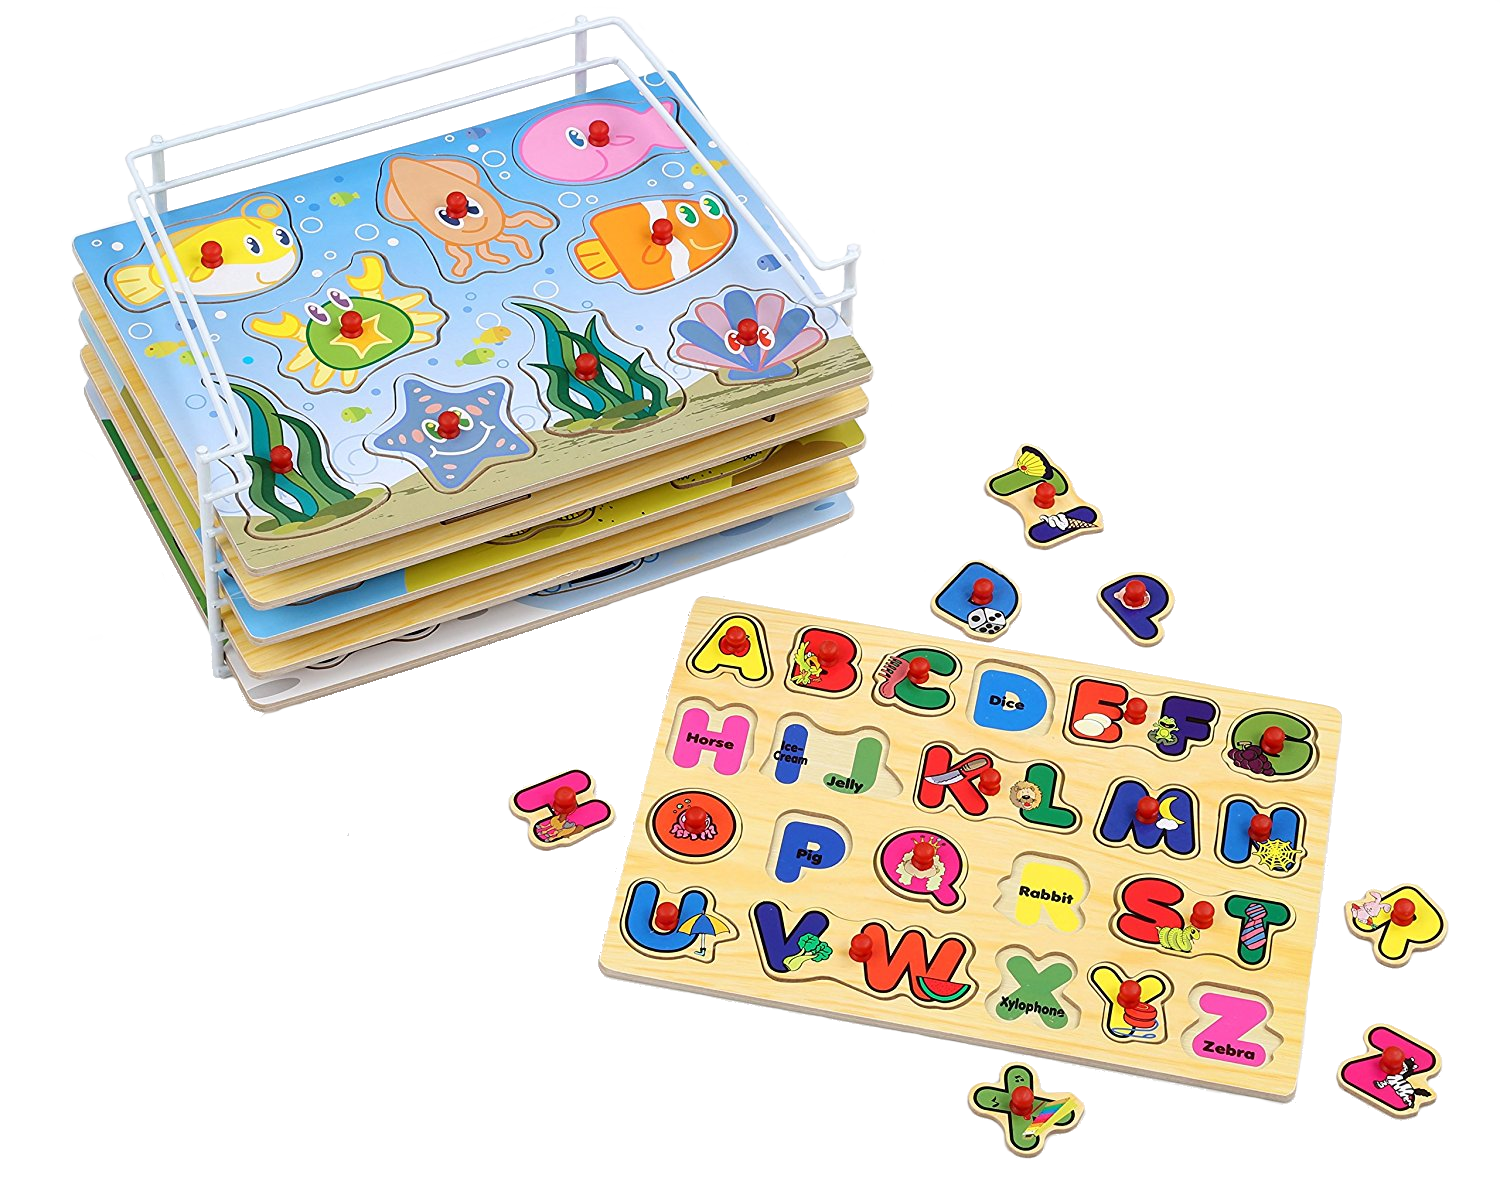 Baby Toddler Toys Wisdkids Wooden Jigsaw Puzzles For Toddlers Kids 3d Board Block Toys Animal Shape Puzzles Preschool Educational Toys For 3 4 5 Years Old Boys Girls Wisdom Play Baby